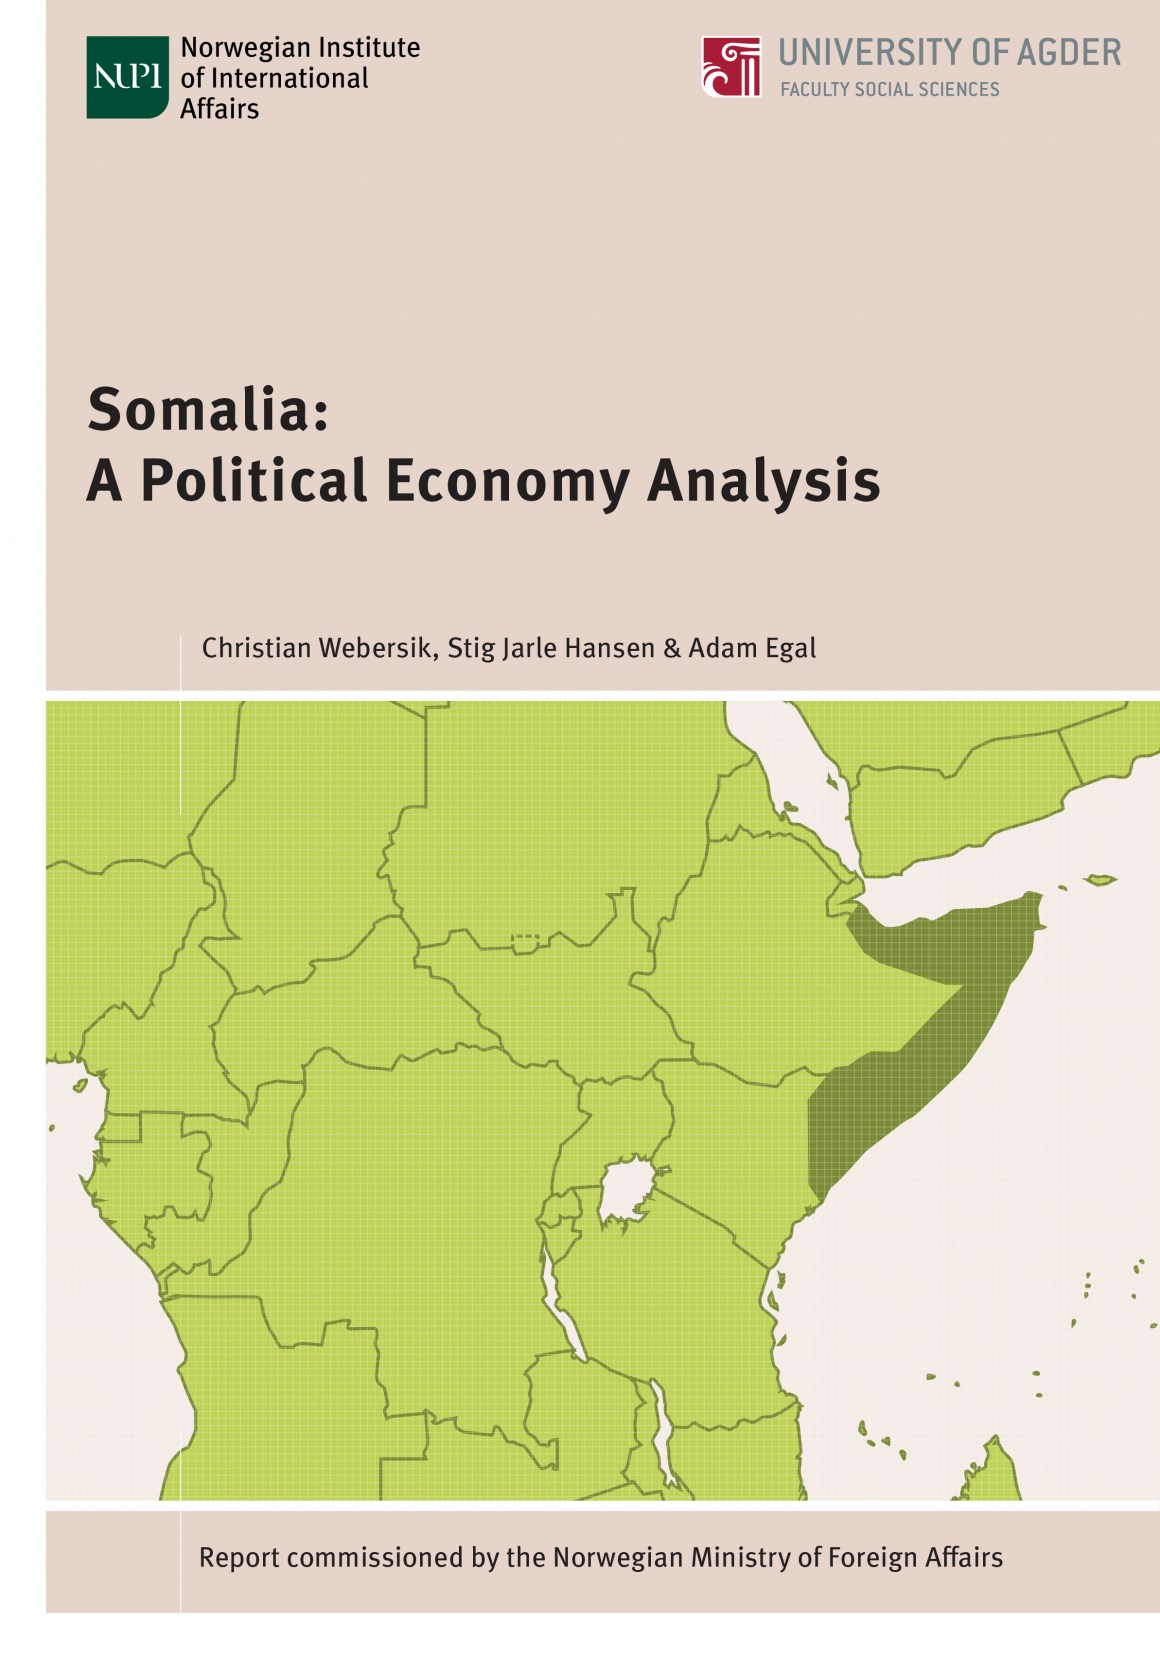 Somalia: A Political Economy Analysis